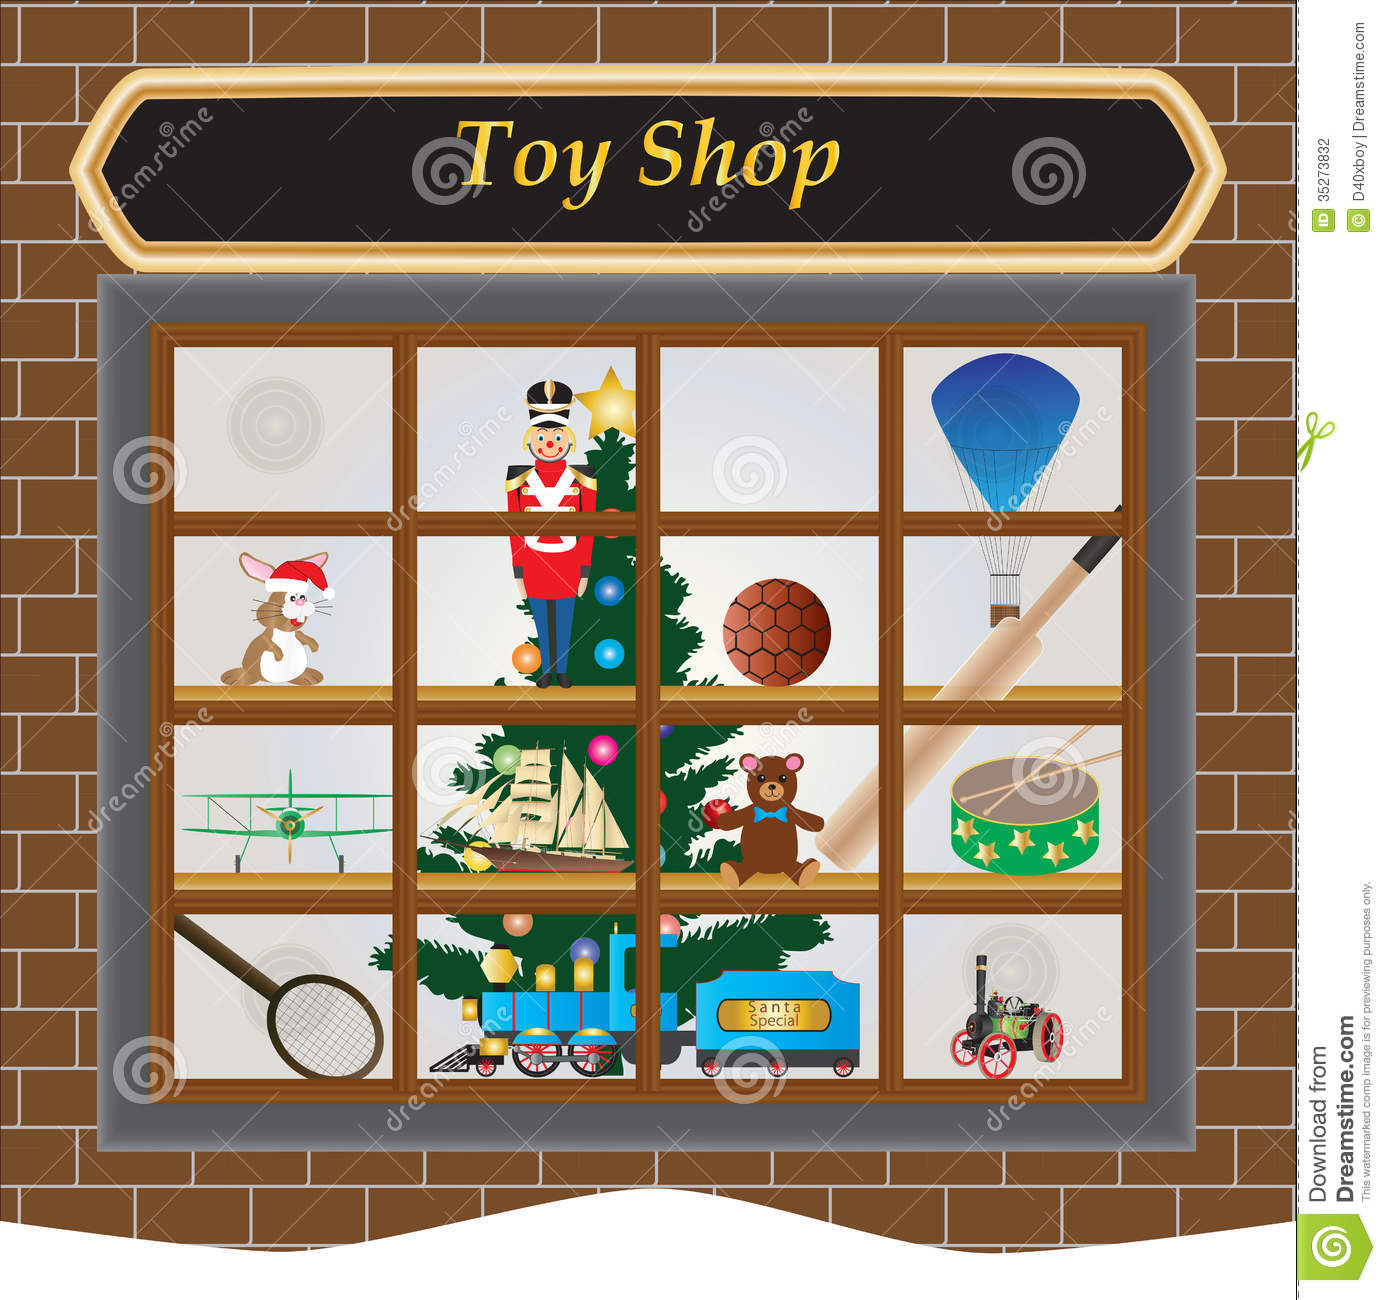 Toyshop cartoons illustrations vector stock images 20 for Tedy shop